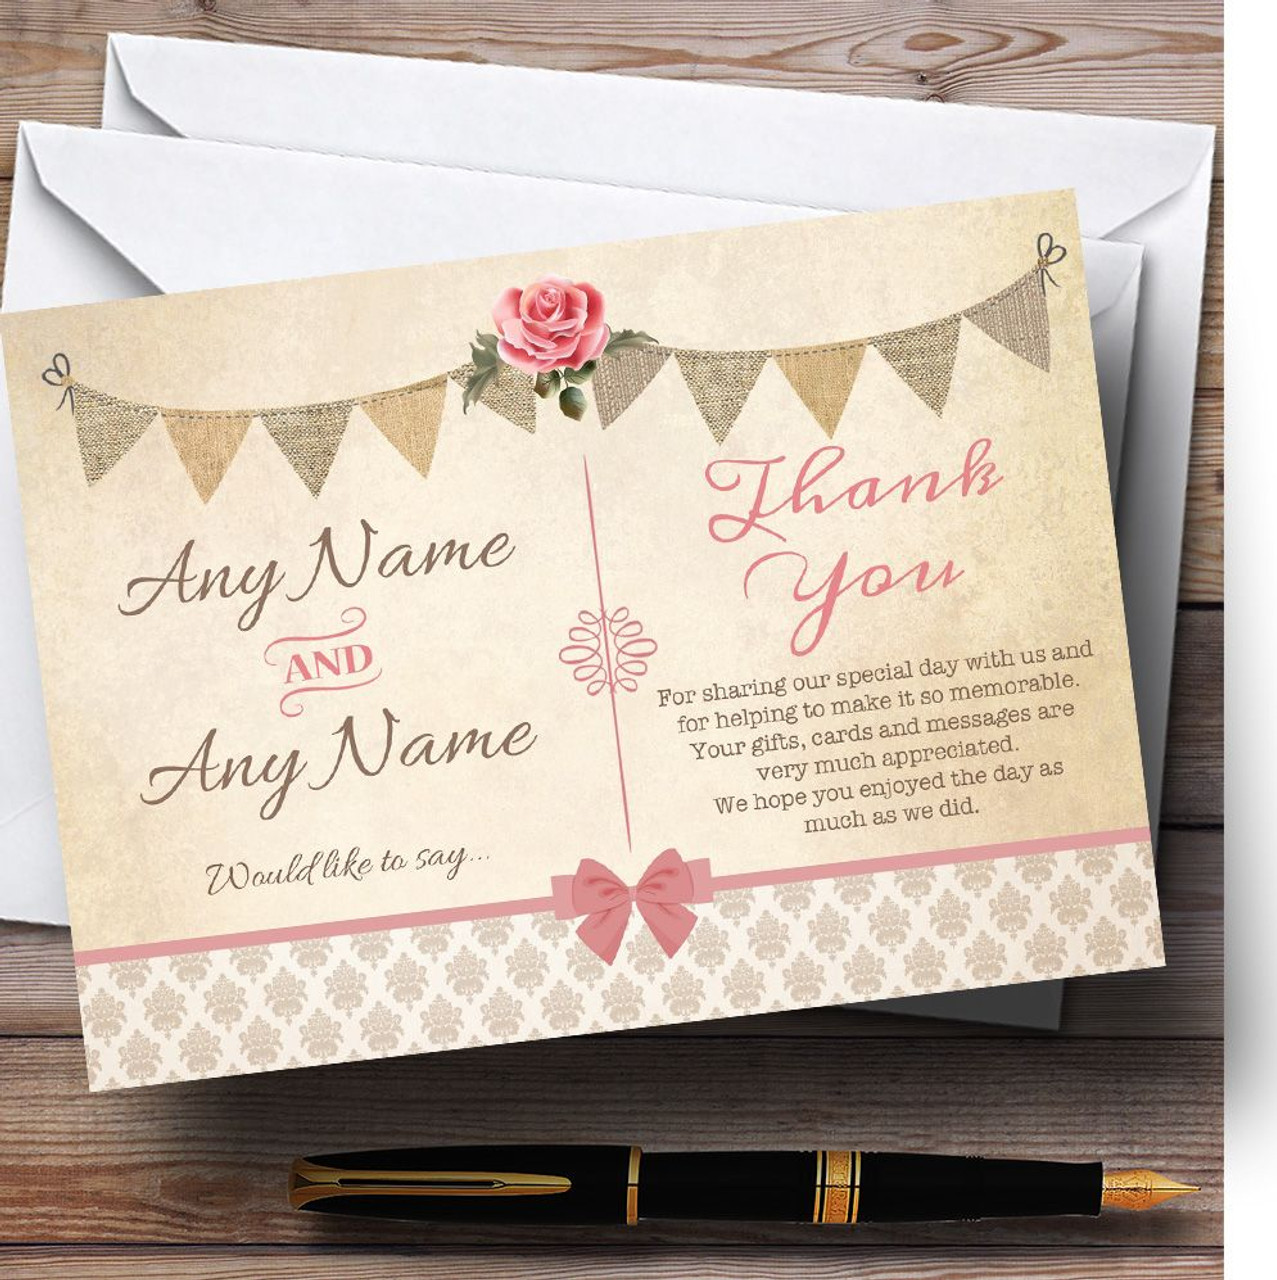 Superb Vintage Rustic Style Bunting Pink Rose Personalized Wedding Thank You Cards Vintage Rustic Style Bunting Pink Rose Personalized Wedding Thank Photo Thank You Cards 1st Birthday Photo Thank You cards Photo Thank You Cards